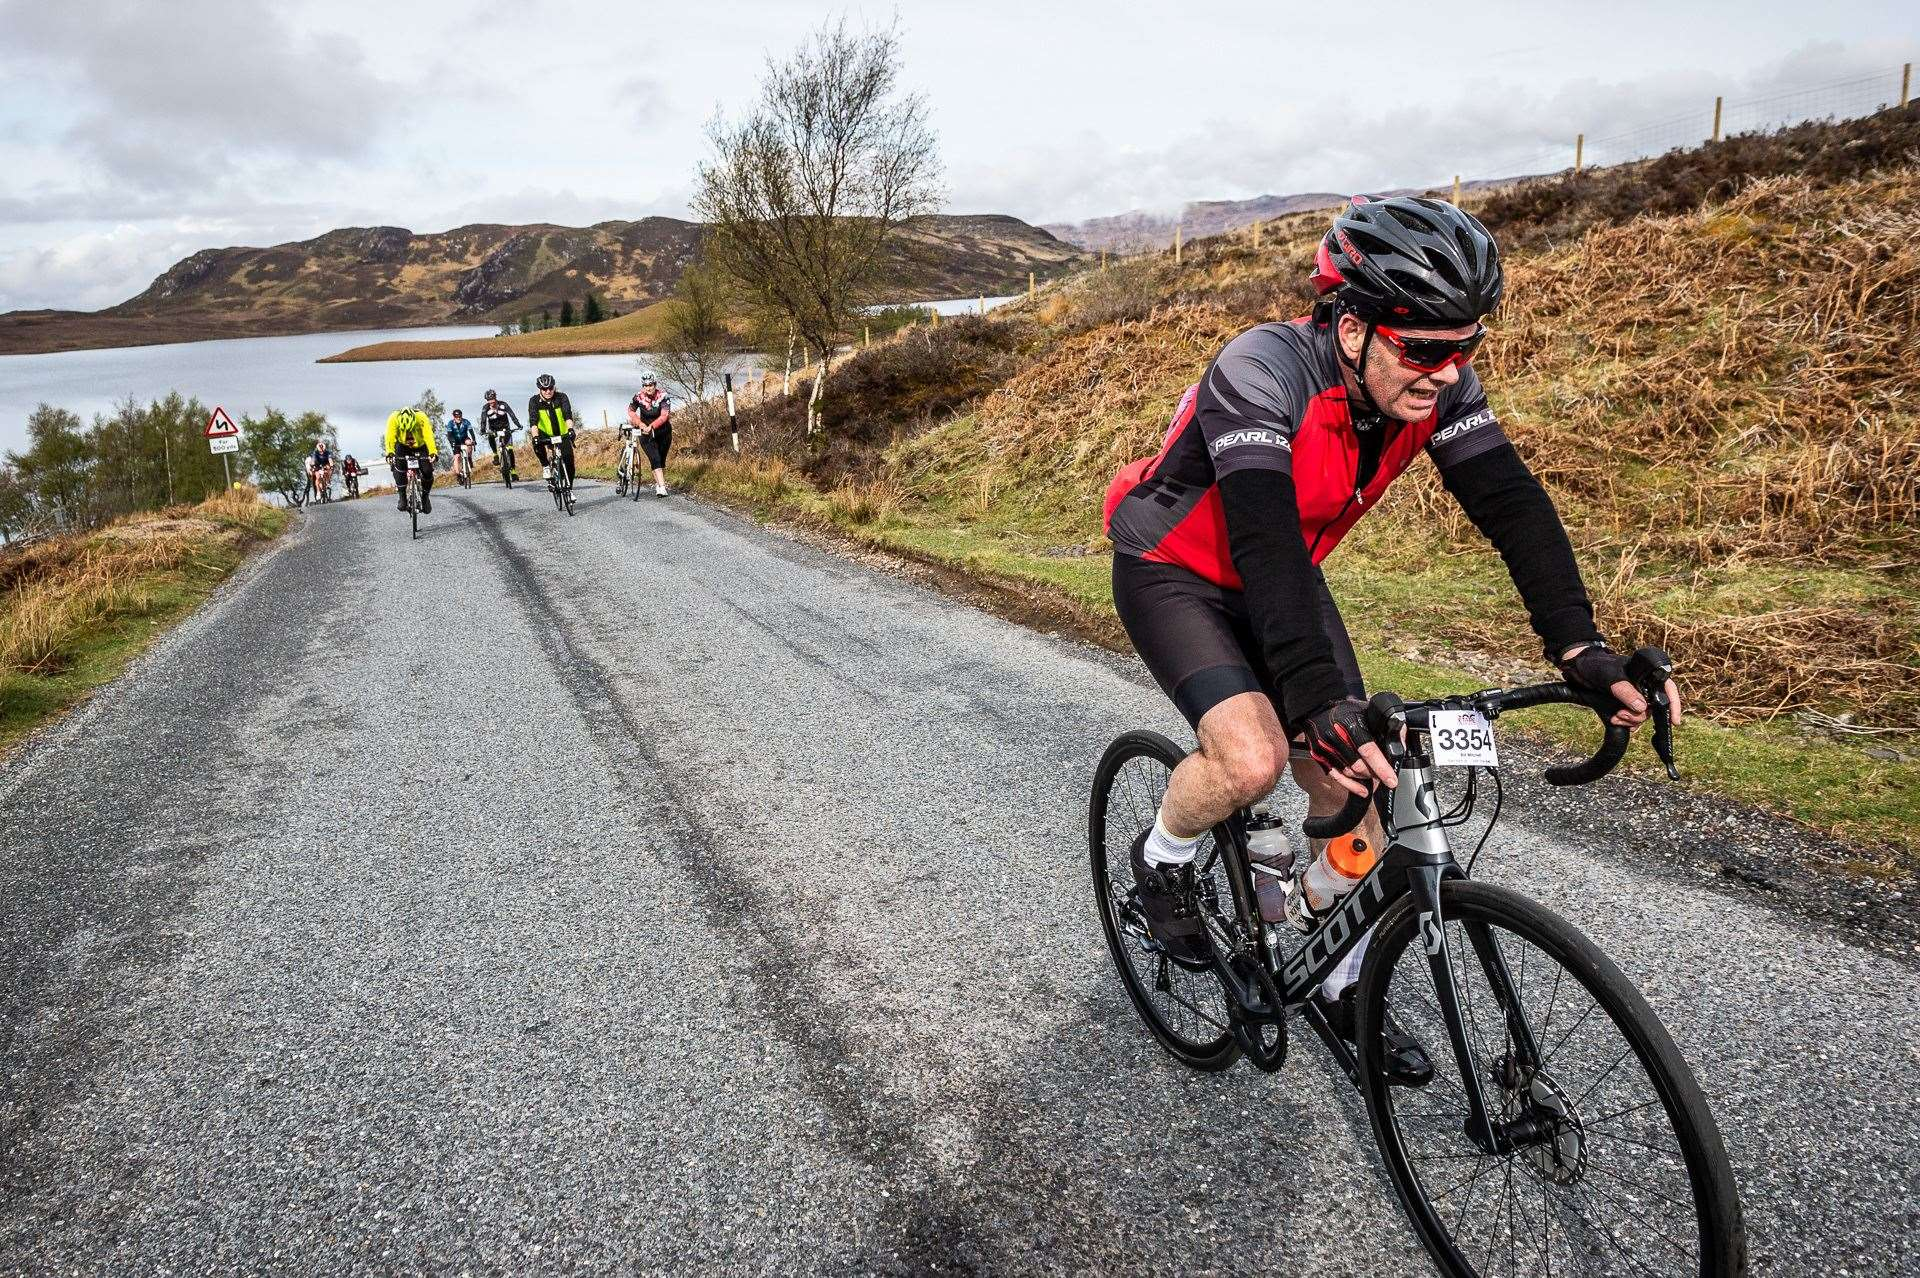 The Loch Ness Stage typically attracts thousands of riders to the Highlands.